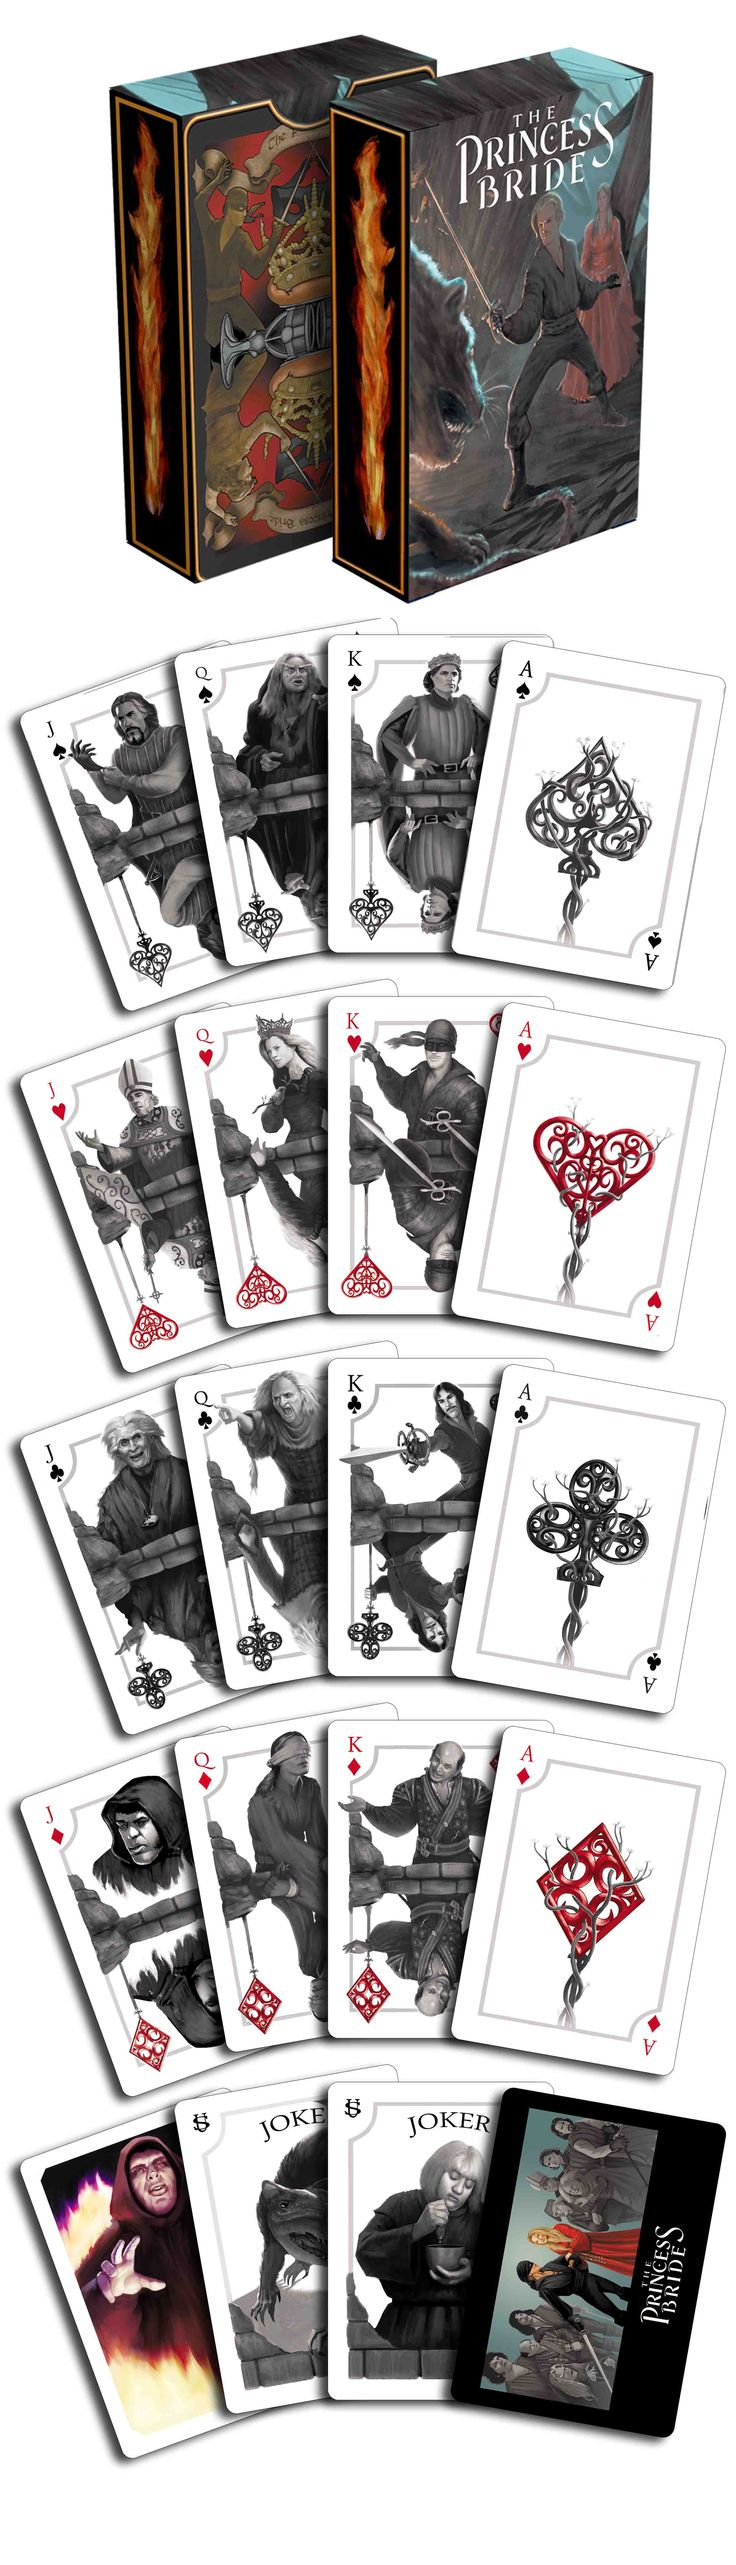 """The Princess Bride Storming the Castle playing cards by Albino Dragon. Have fun """"storming the castle"""" with this dramatic black and white deck. Now available on www.albinodragon.com"""